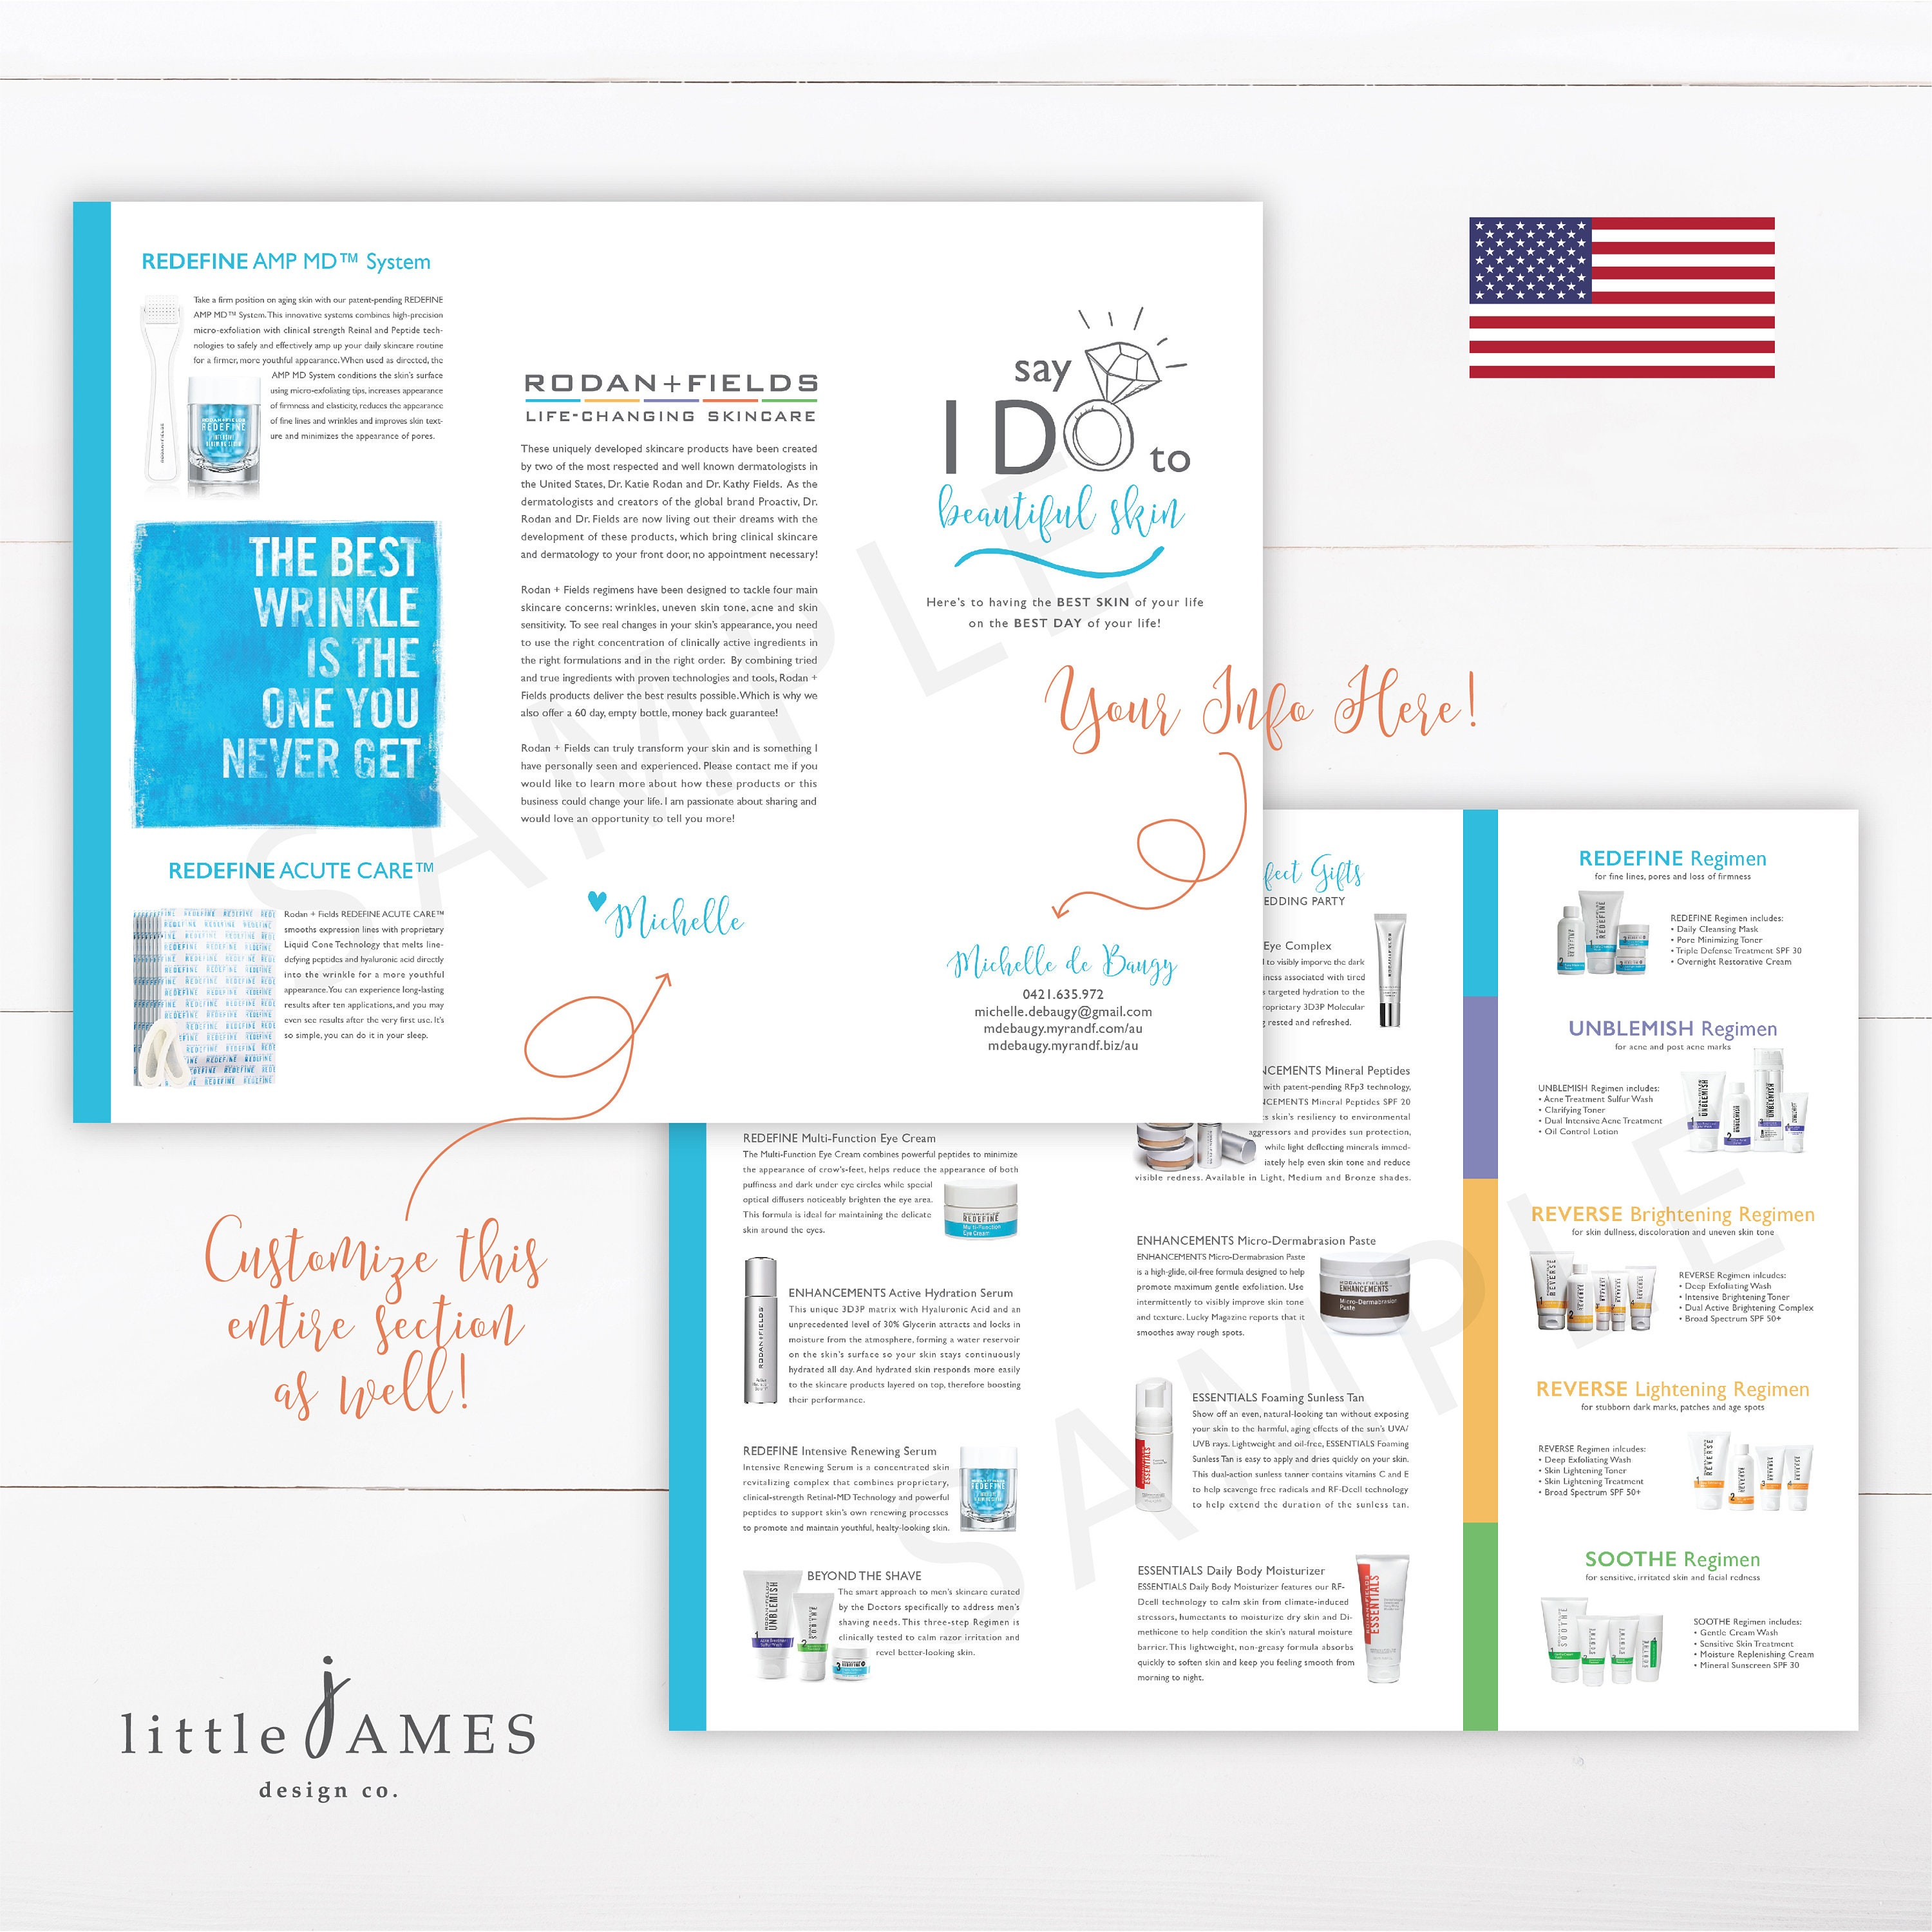 Wedding Expo Rodan and Fields Trifold Product Brochure (USA) - Rodan and  Fields Bride / Wedding Expo / Product Brochure